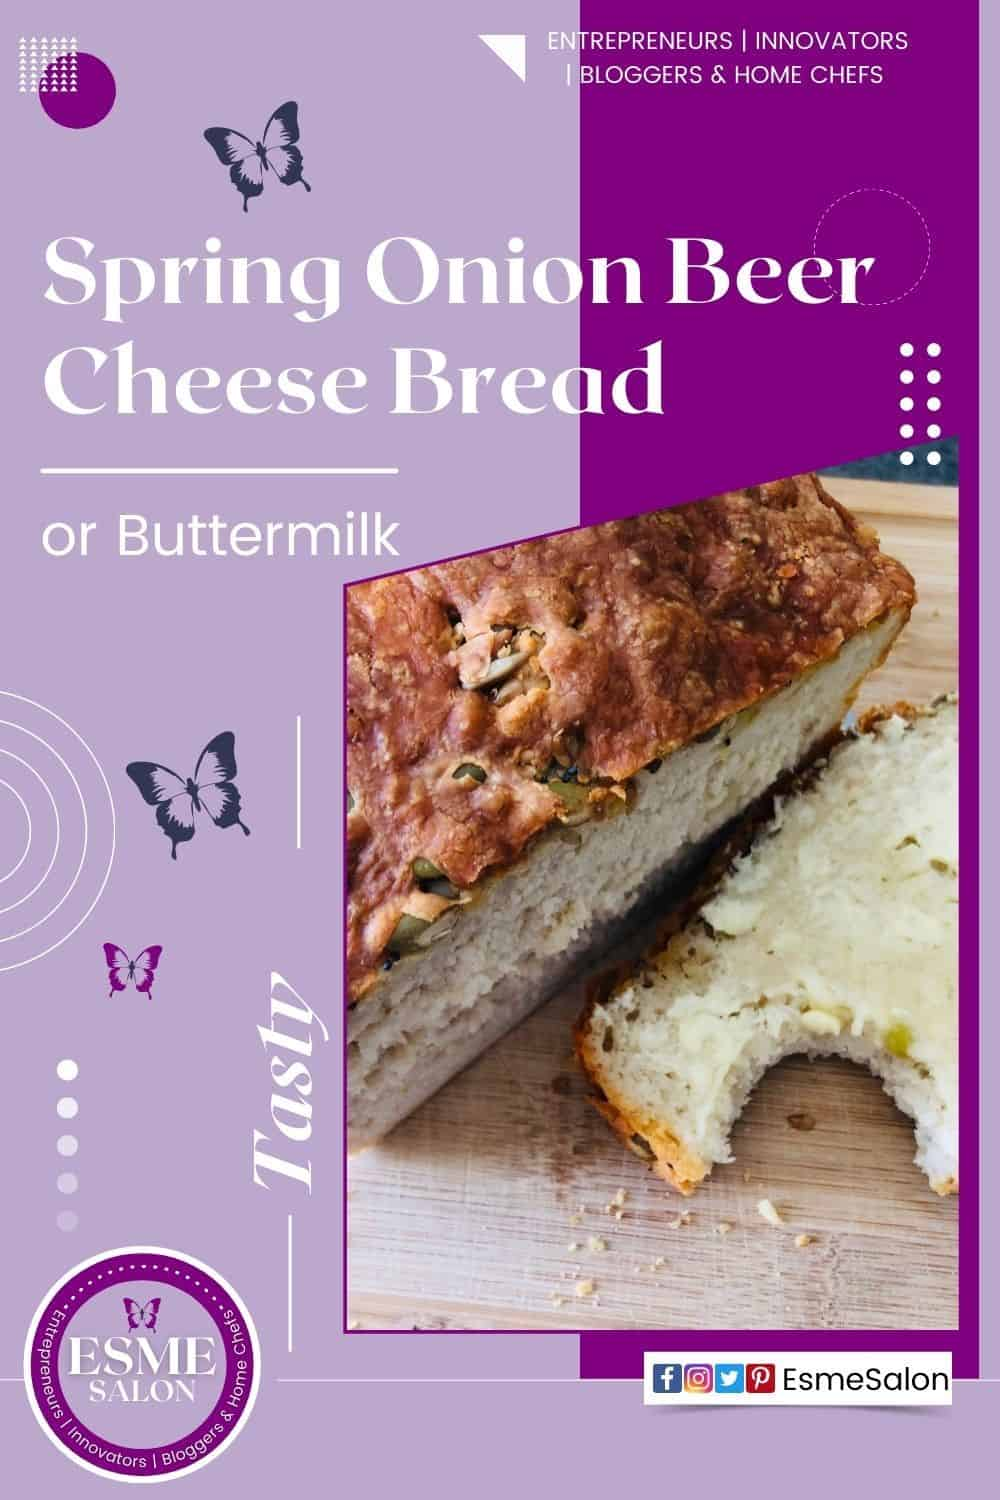 Loaf of spring onion bread and a slice with butter and a bite taken from it